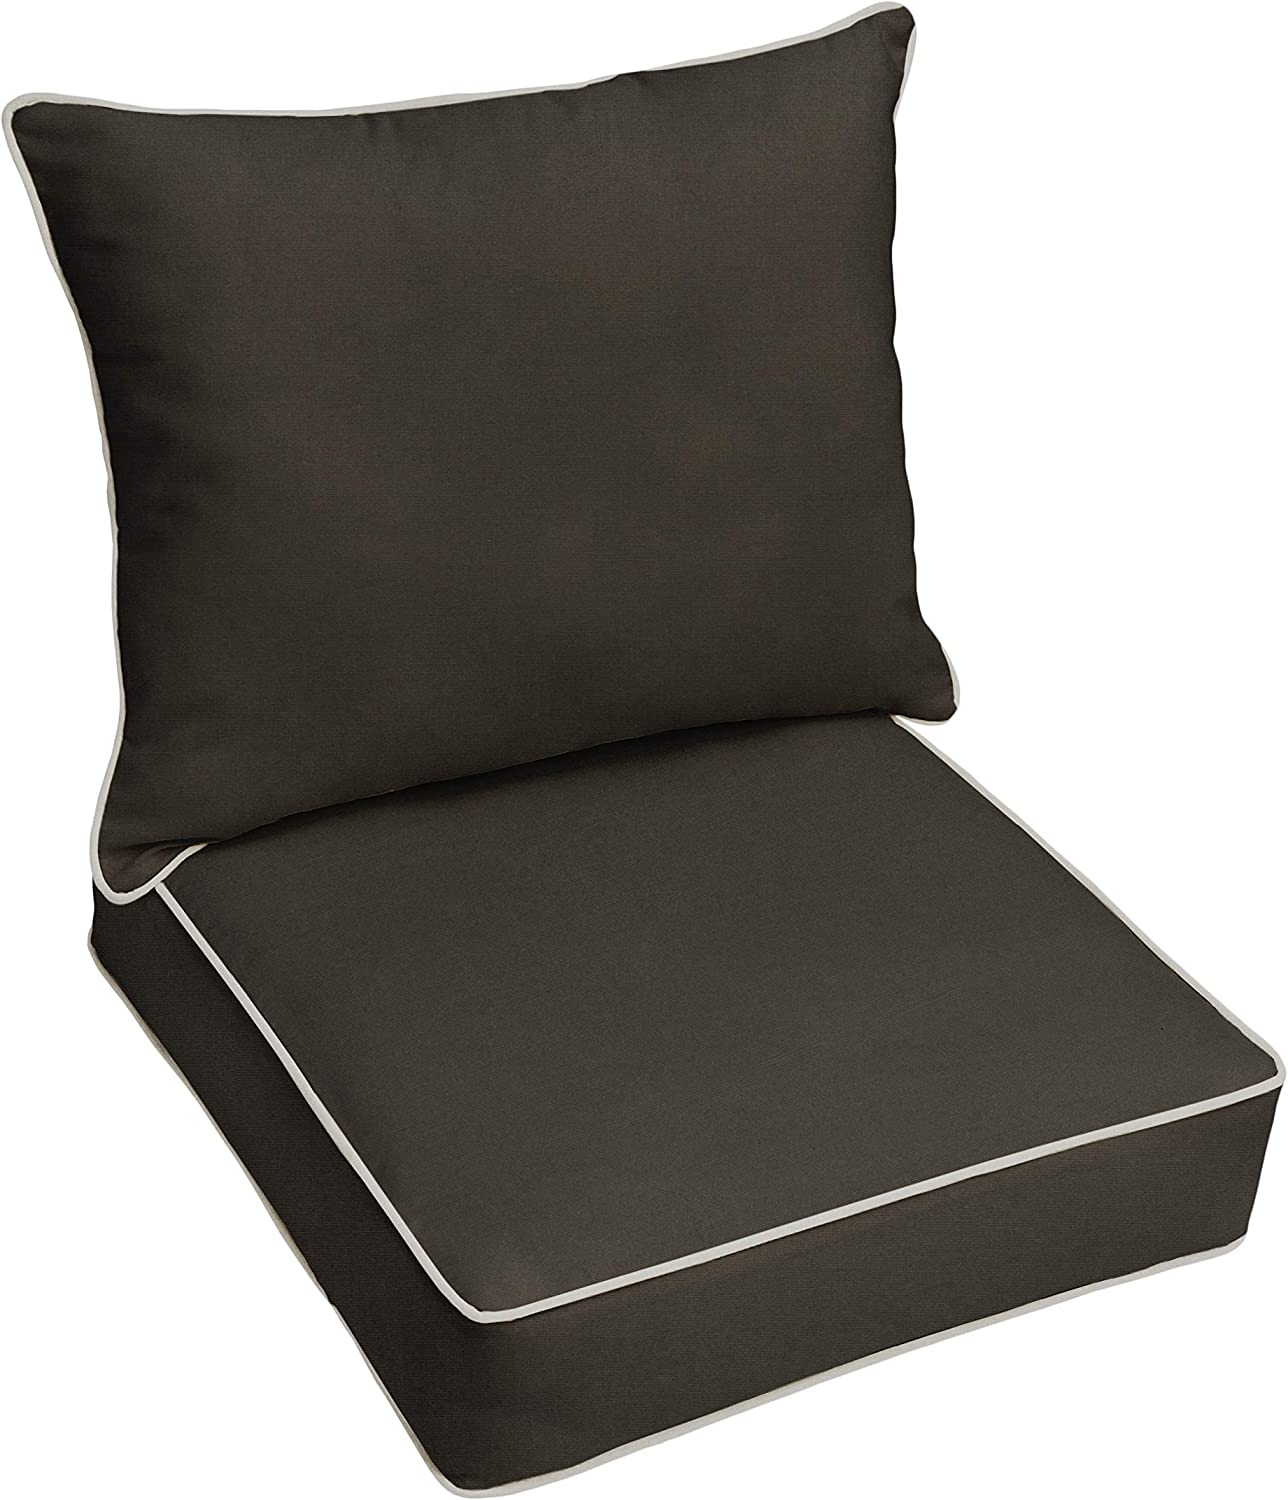 Mozaic AZPC6874 Indoor or Outdoor Sunbrella Deep Seating Cushion & Pillow Set with Corded Edges, 23 in W x 25 in D, Canvas Black